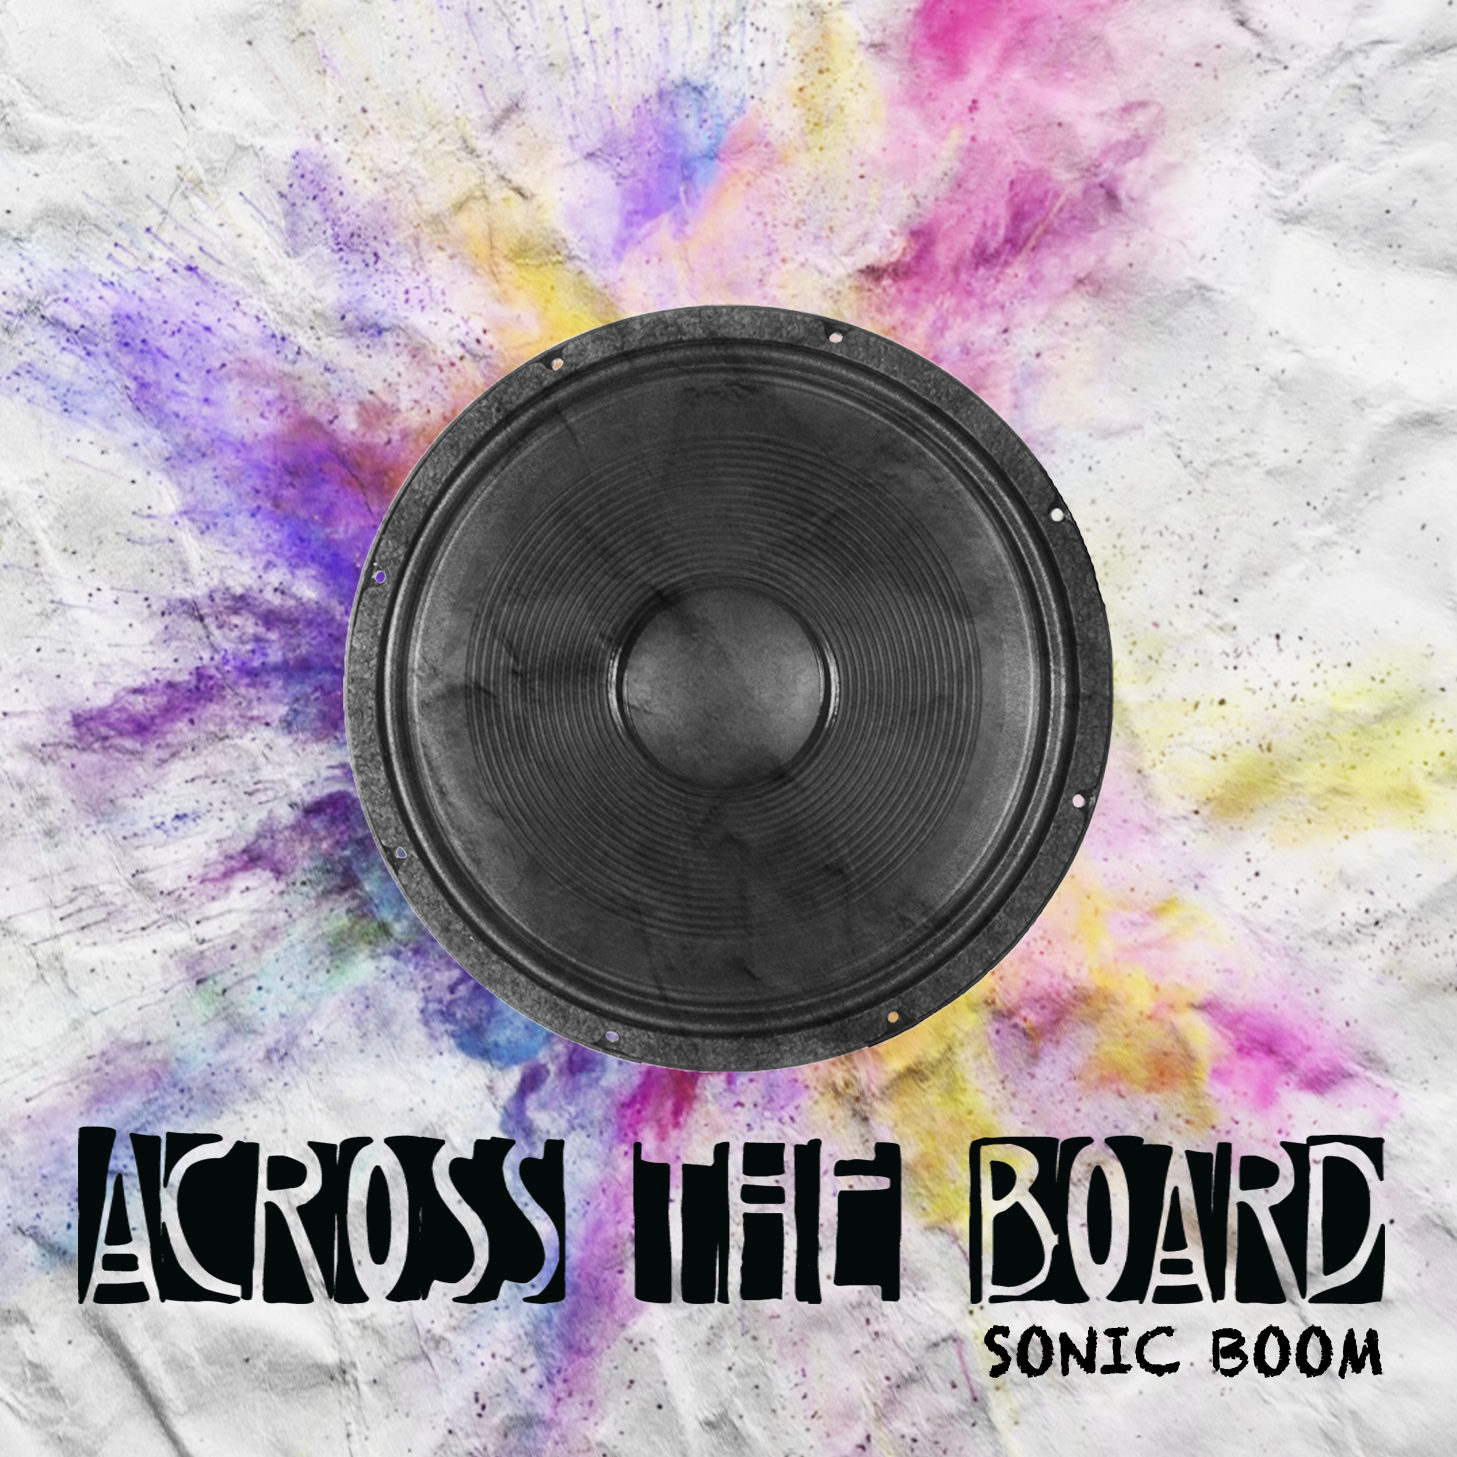 Canadian Rock Band Across The Board Set To Release Second